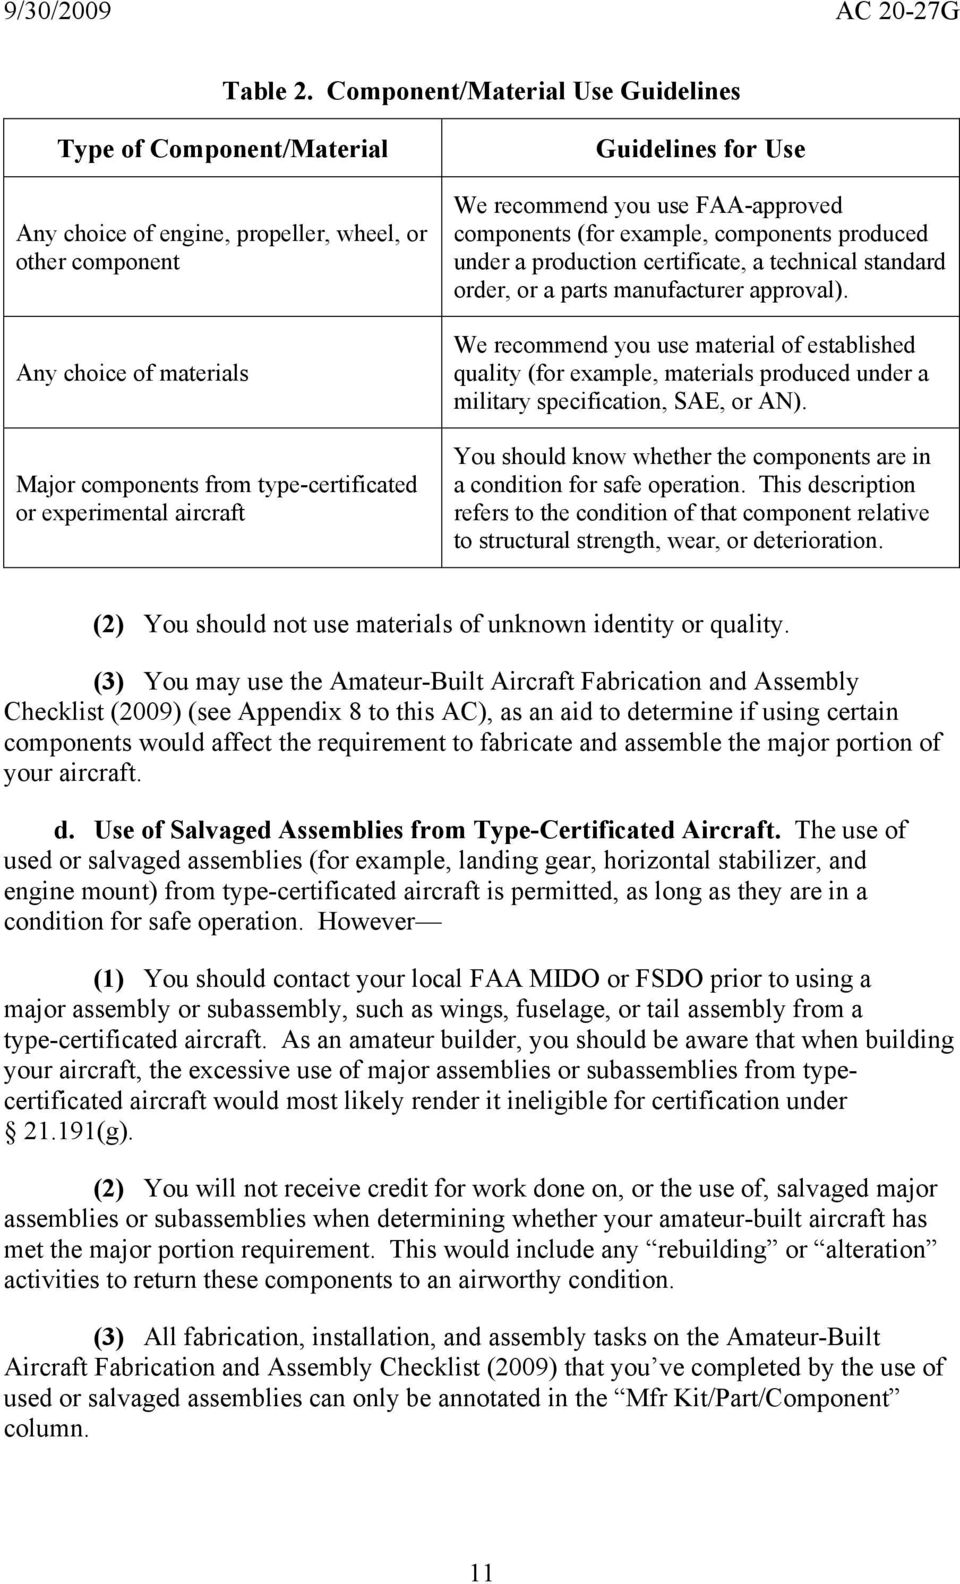 aircraft Guidelines for Use We recommend you use FAA-approved components (for example, components produced under a production certificate, a technical standard order, or a parts manufacturer